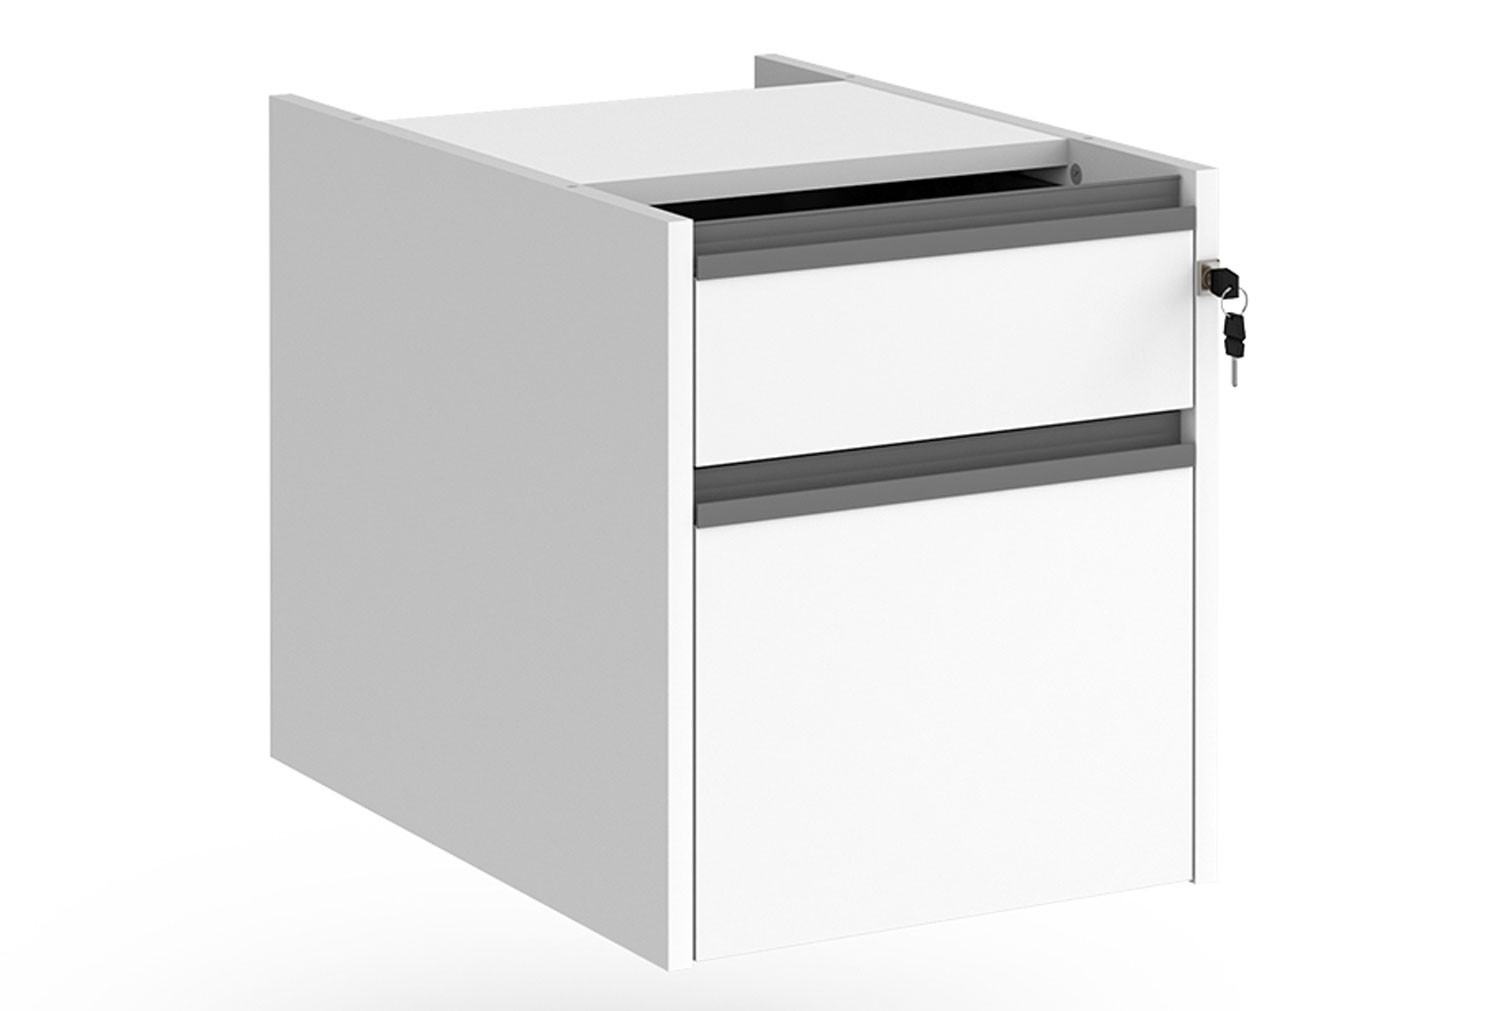 Value Line Classic+ Fixed 2 Drawer Pedestal (Graphite Slats)